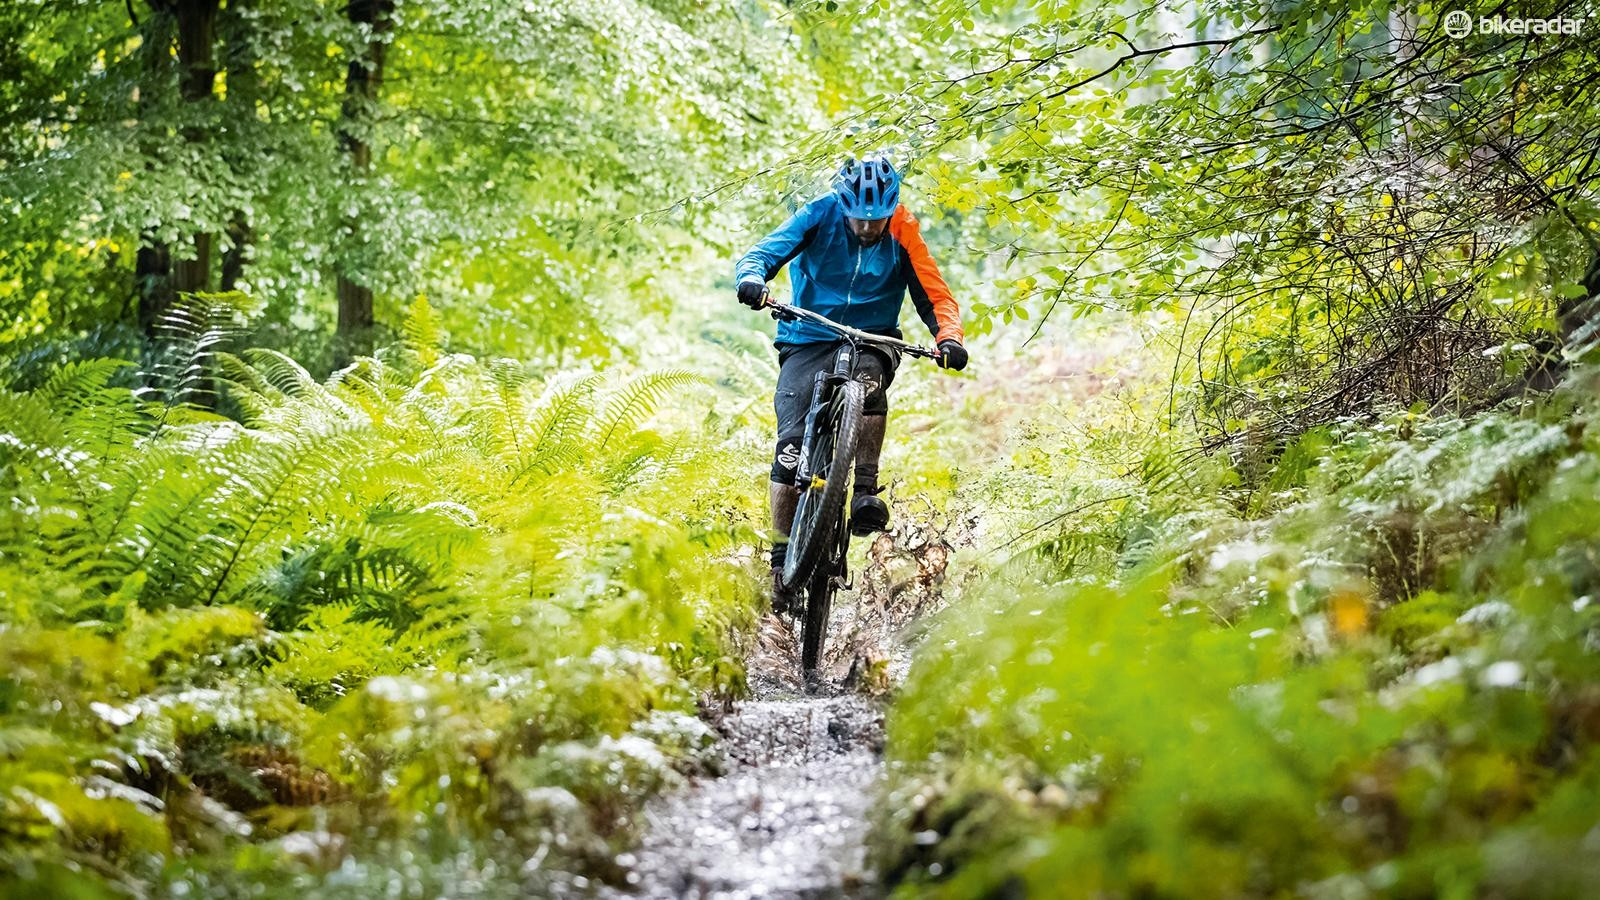 Wet trails can be tricky to handle